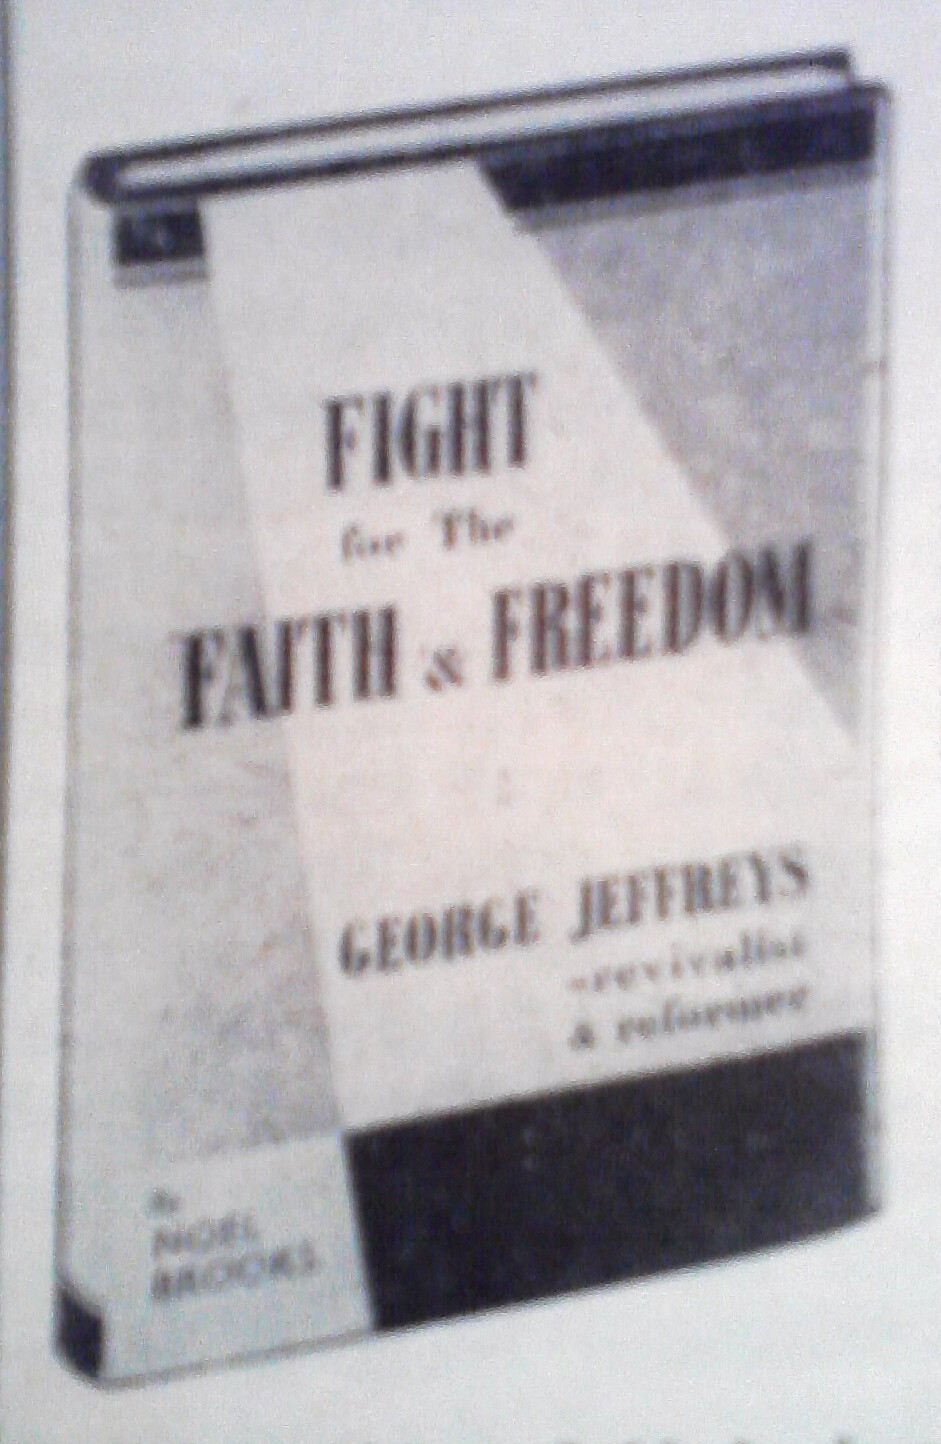 Fight for faith and freedom. DOWNLOADABLE VERSION ADOBE CAN BE VEIWED ON A KINDLE